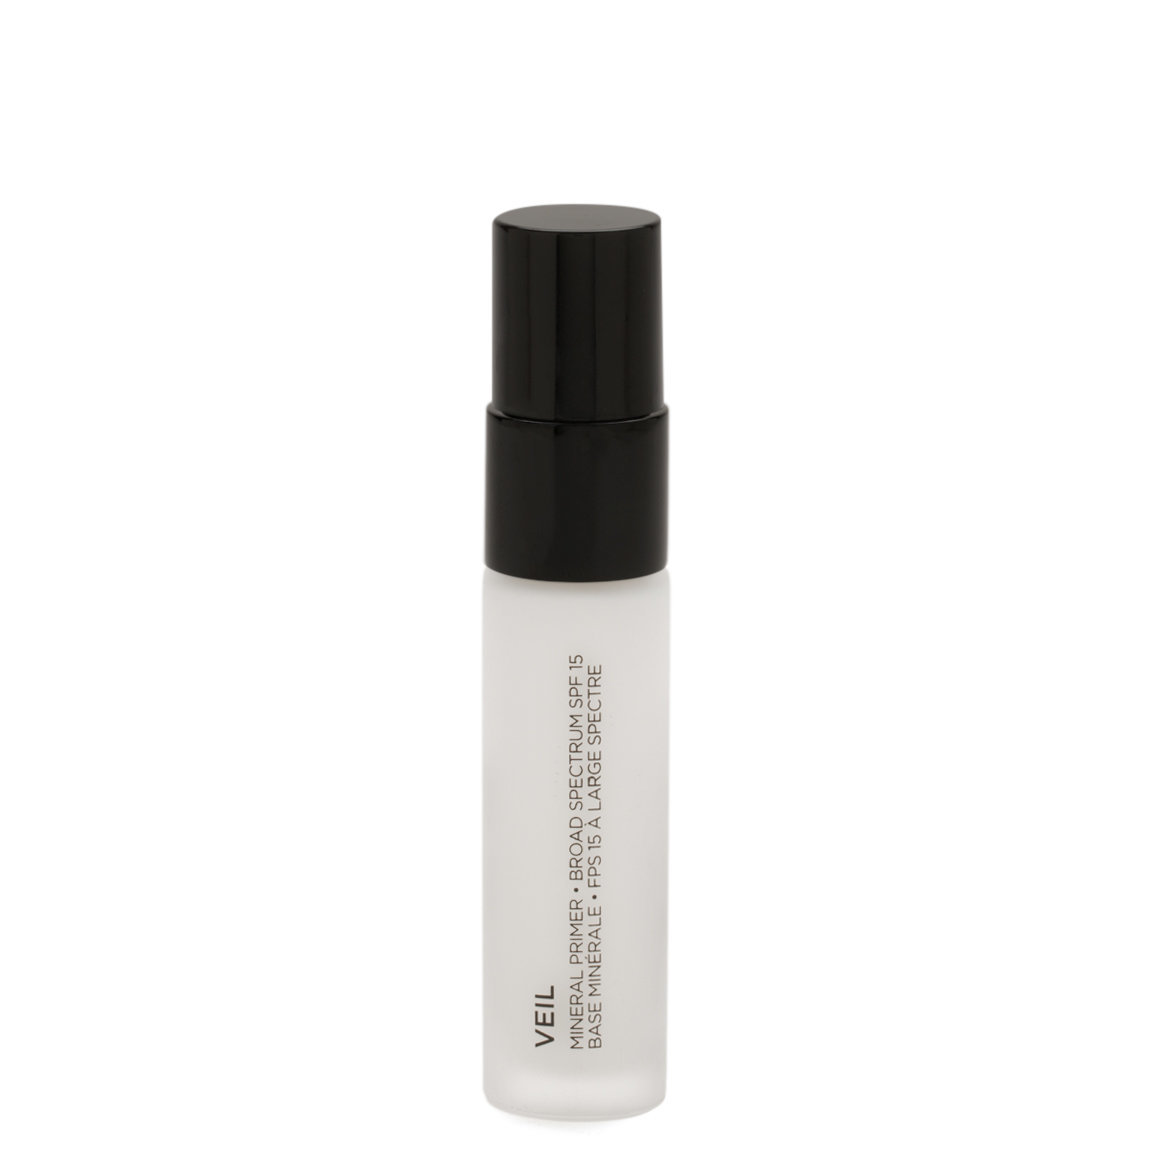 Hourglass Veil Mineral Primer 8.95 ml product swatch.